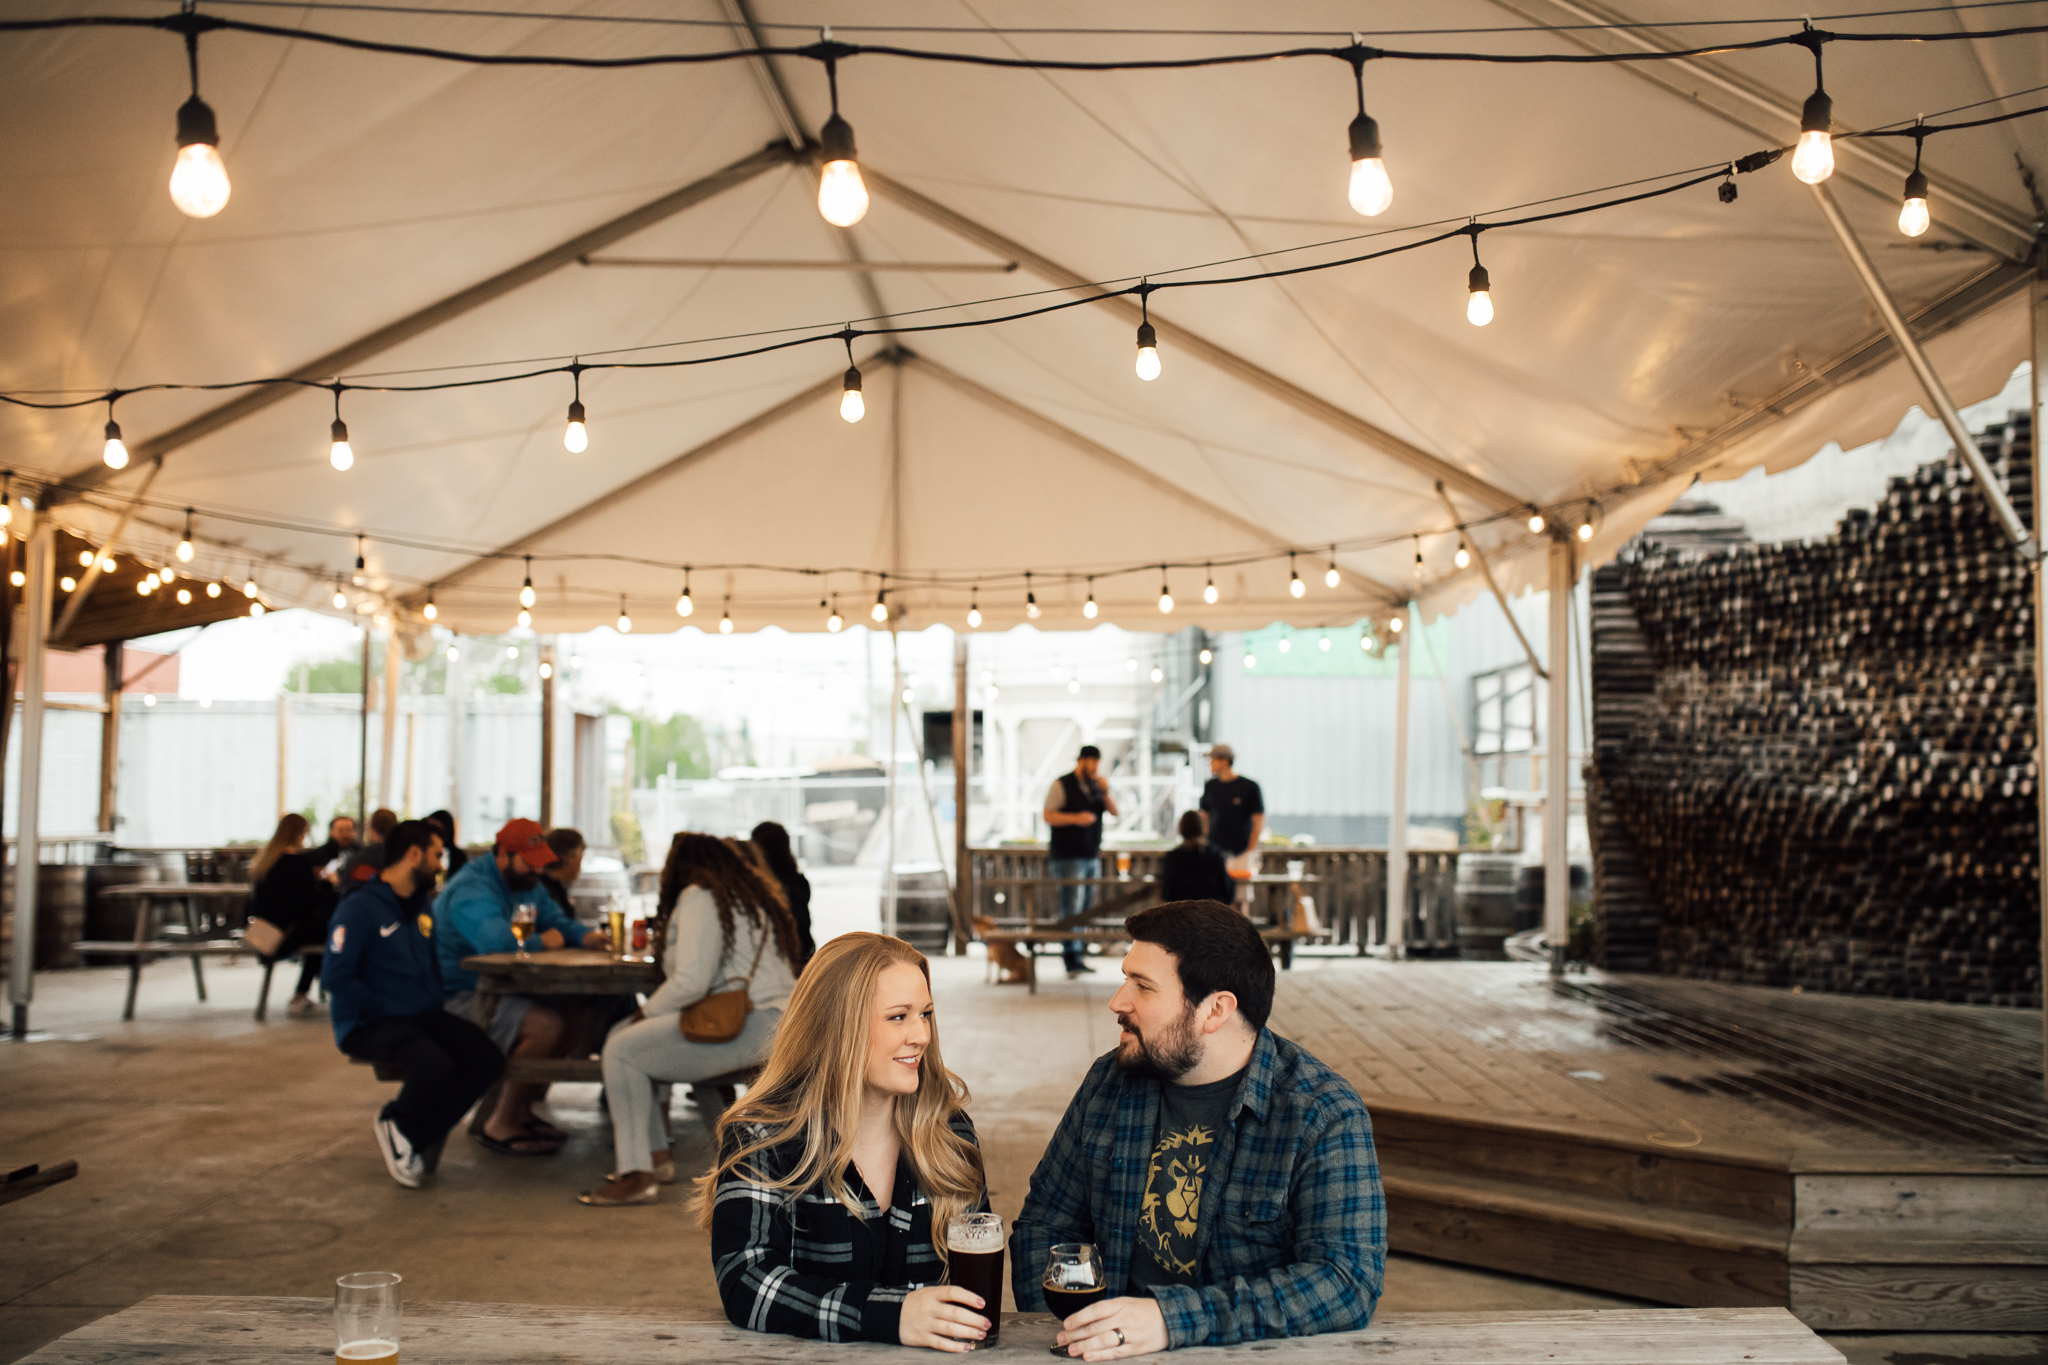 wiseacre-brewing-wedding-photographer-the-warmth-around-you-cassie-cook-photography (6 of 64).jpg